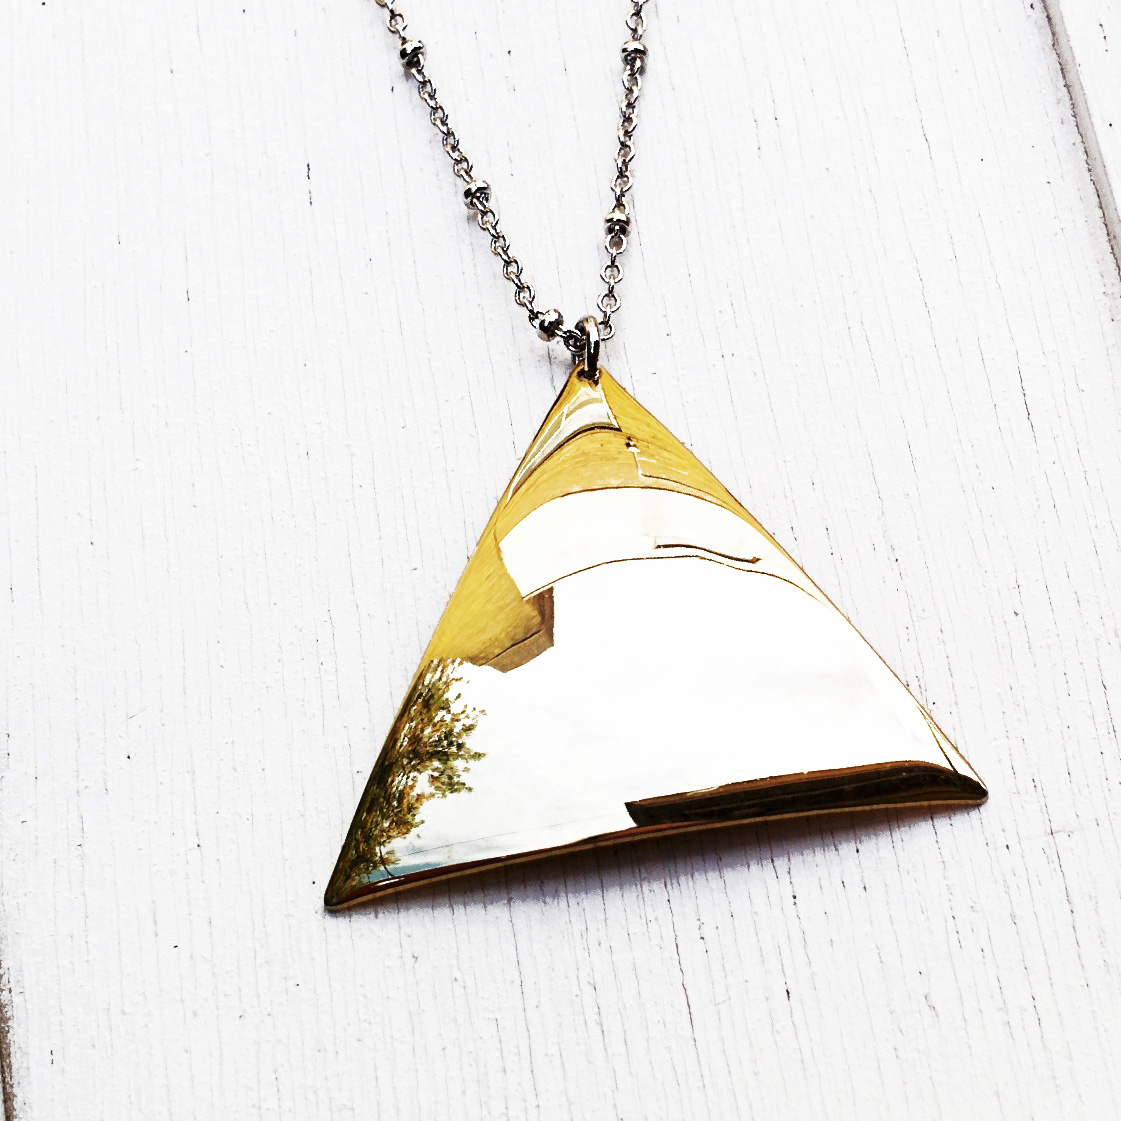 Long hanging reflective metal triangle pendant